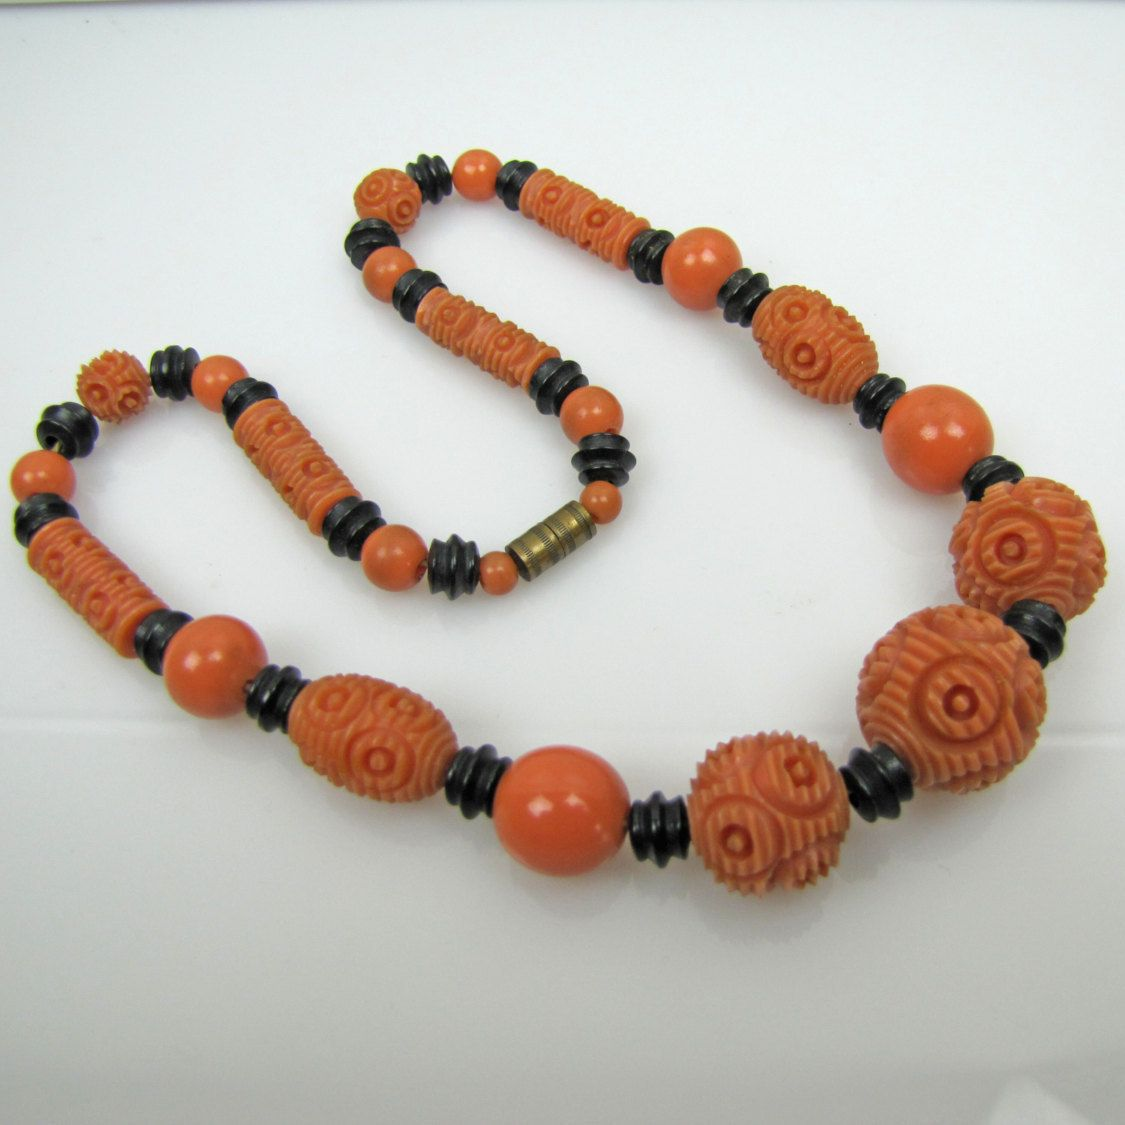 Art Deco French Bakelite Necklace. Carved Galalith Beads. Coral Red & Black. Antique Vintage 1920s Jewelry. Great Gatsby Downton Abbey by MercyMadge on Etsy